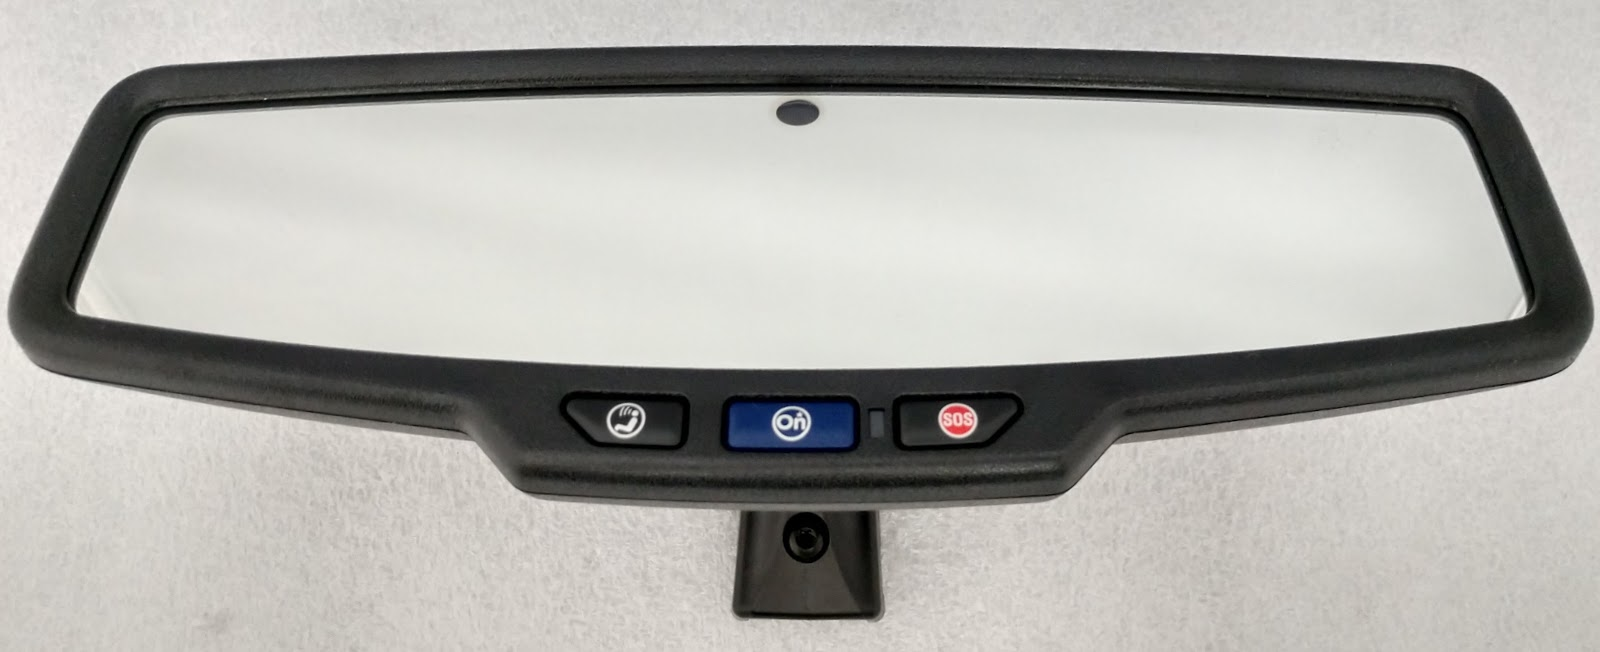 Rear View Mirror With Onstar And Auto